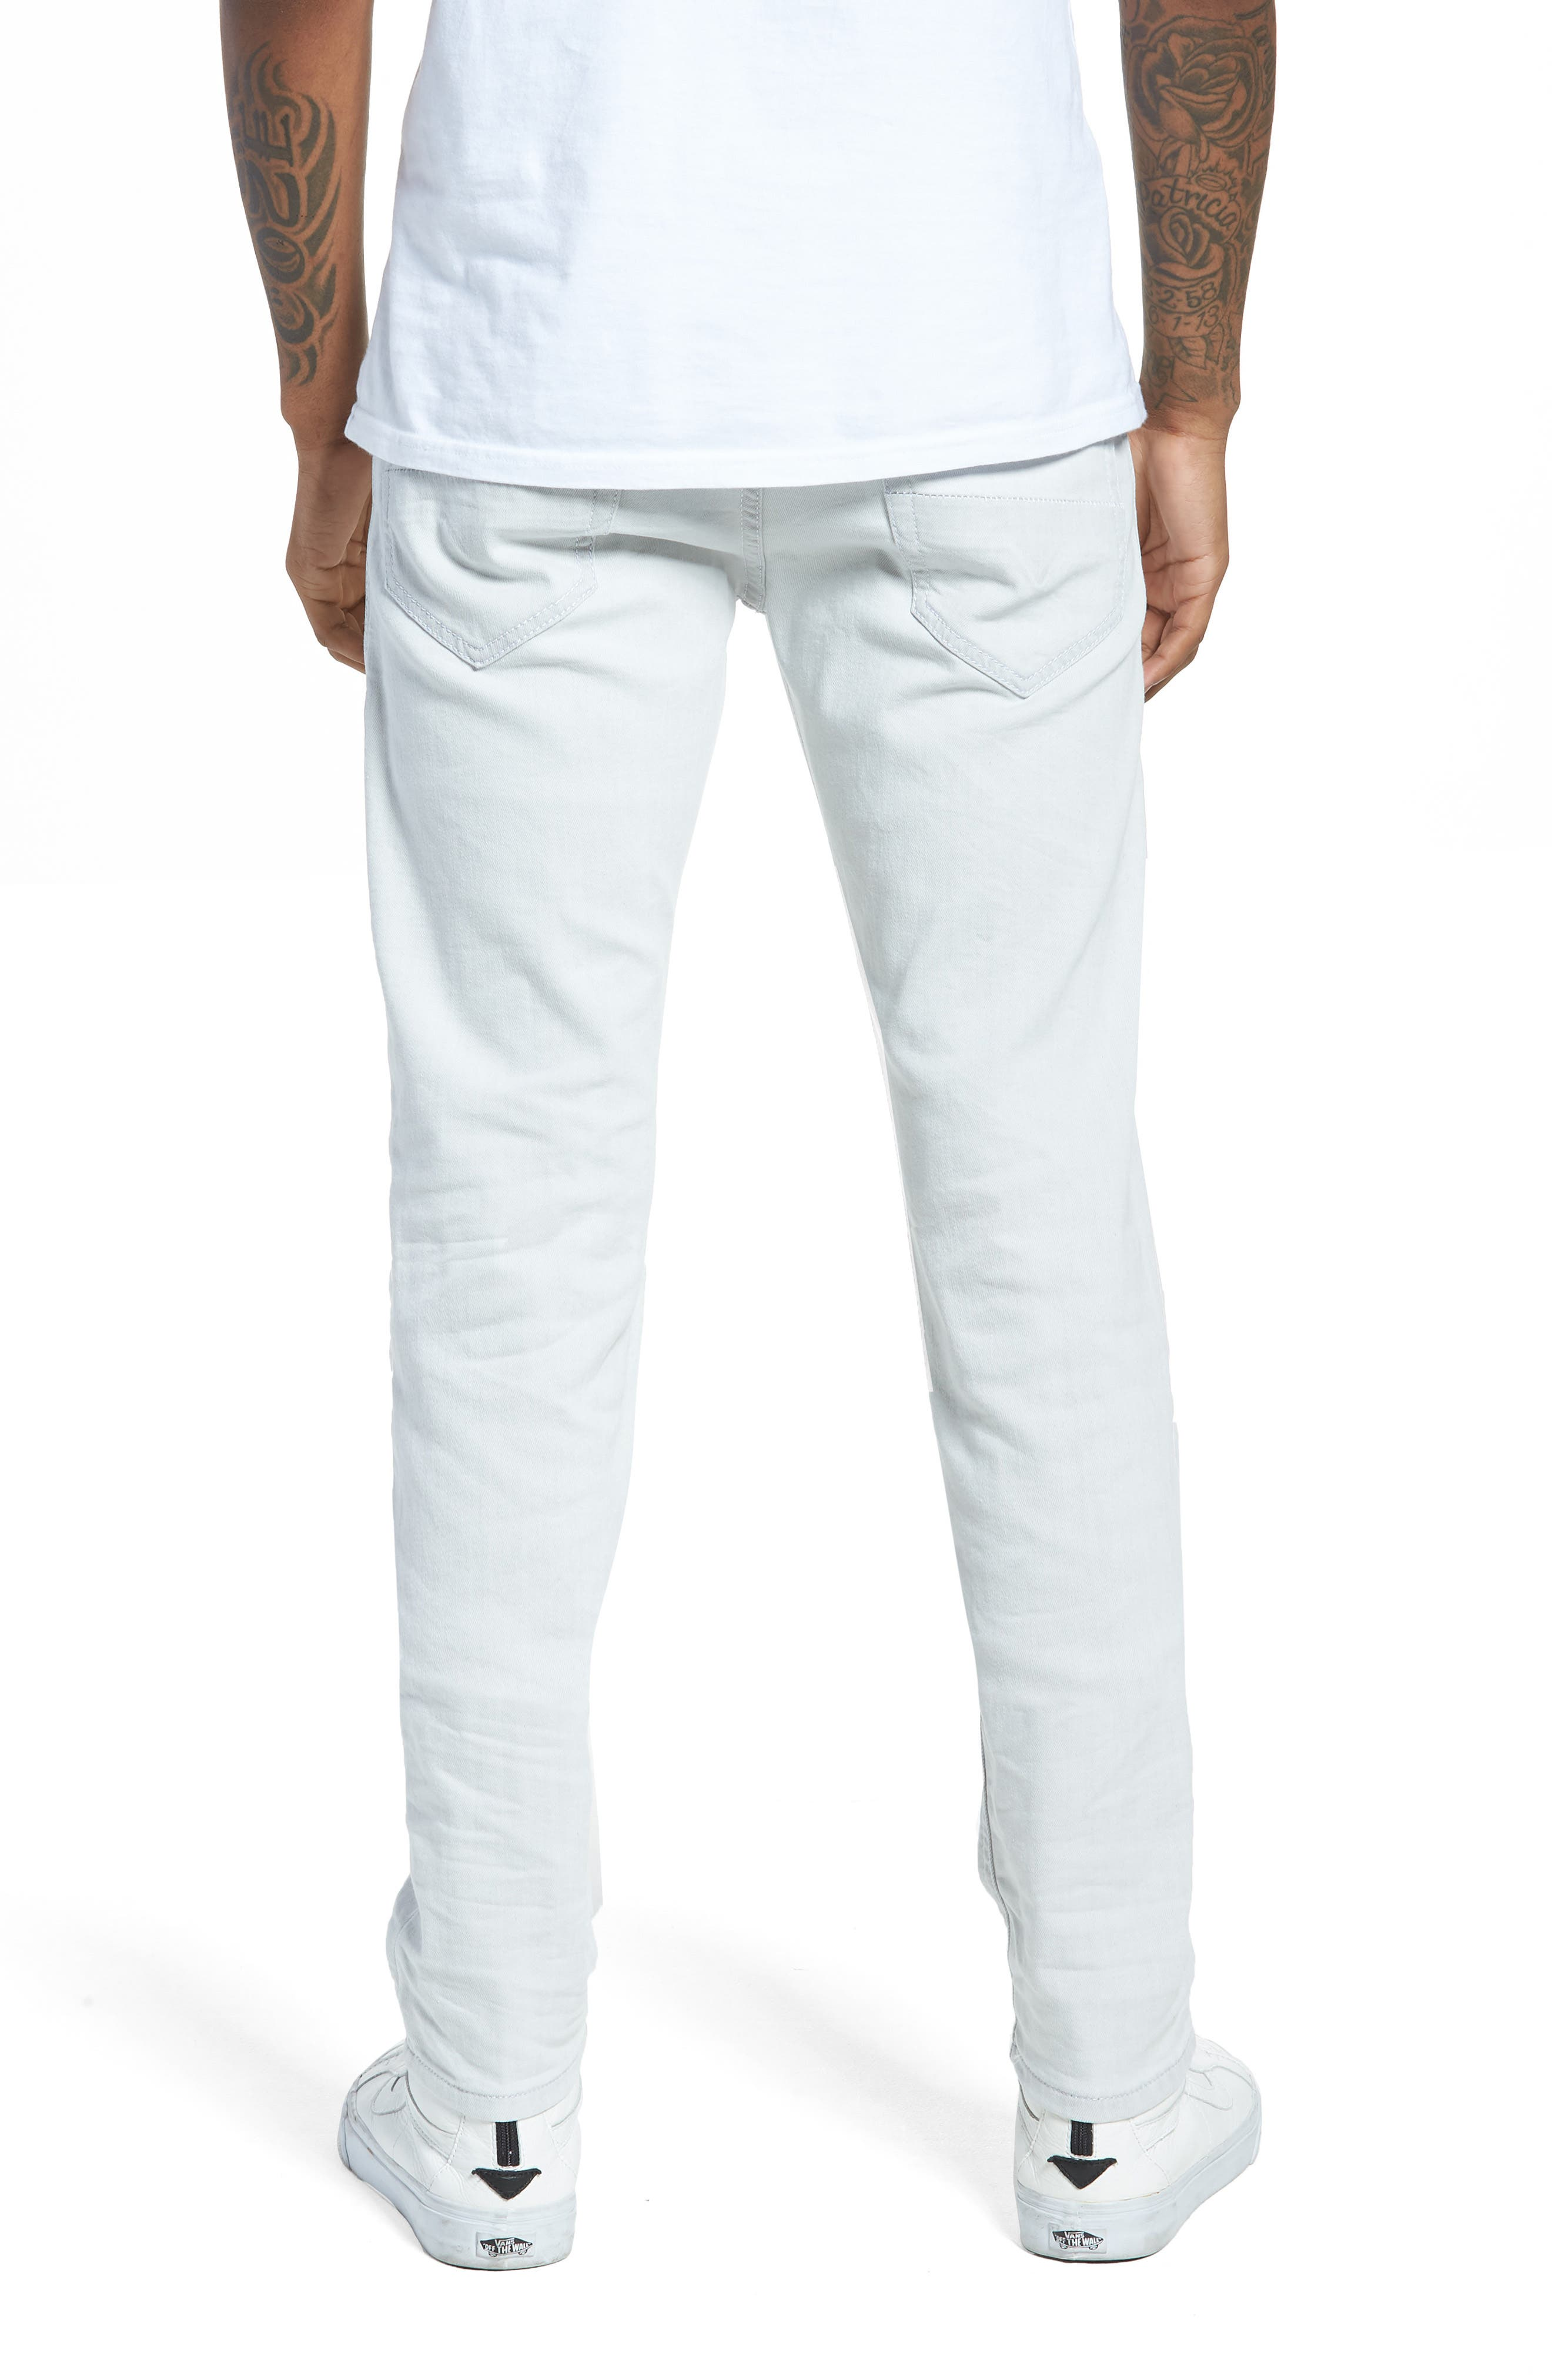 Thommer Slim Fit Jeans,                             Alternate thumbnail 5, color,                             0689F